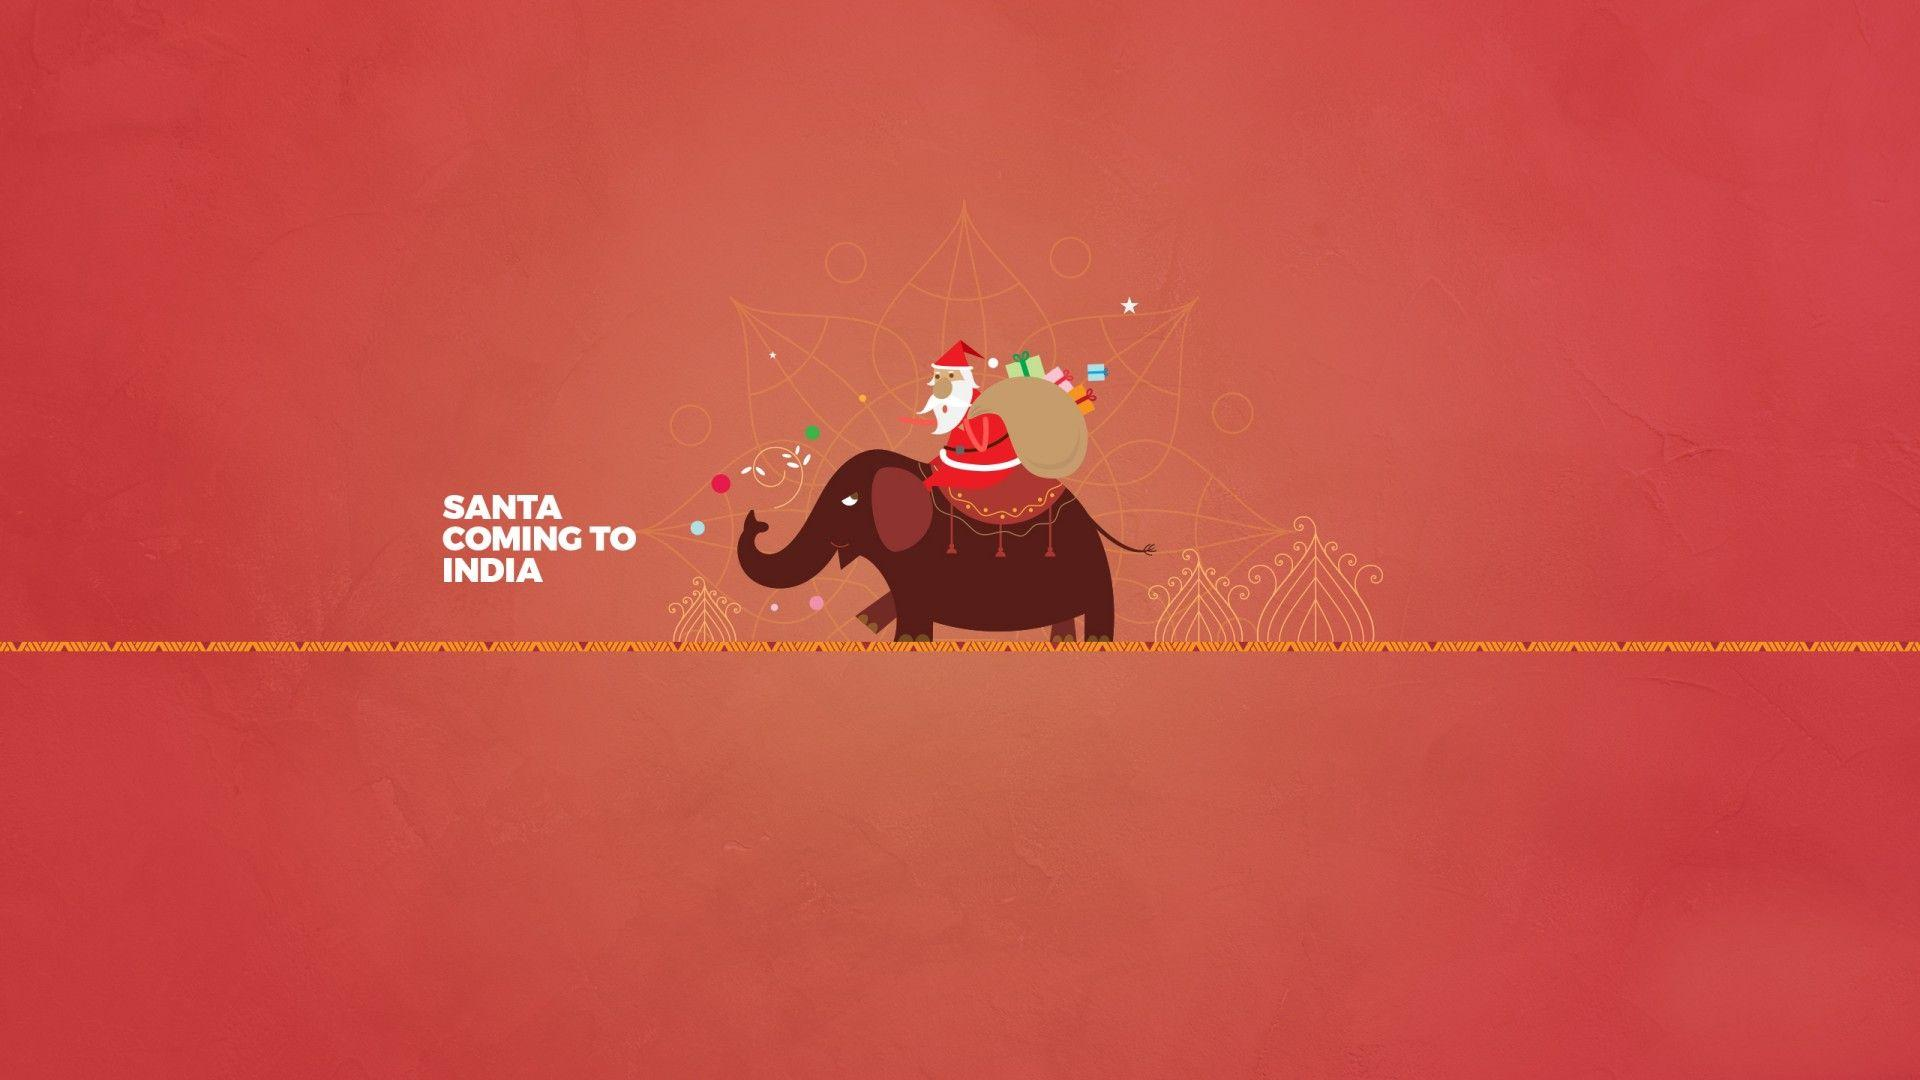 Wallpaper Santa Claus, Elephant, India, Minimal, HD, Celebrations ...